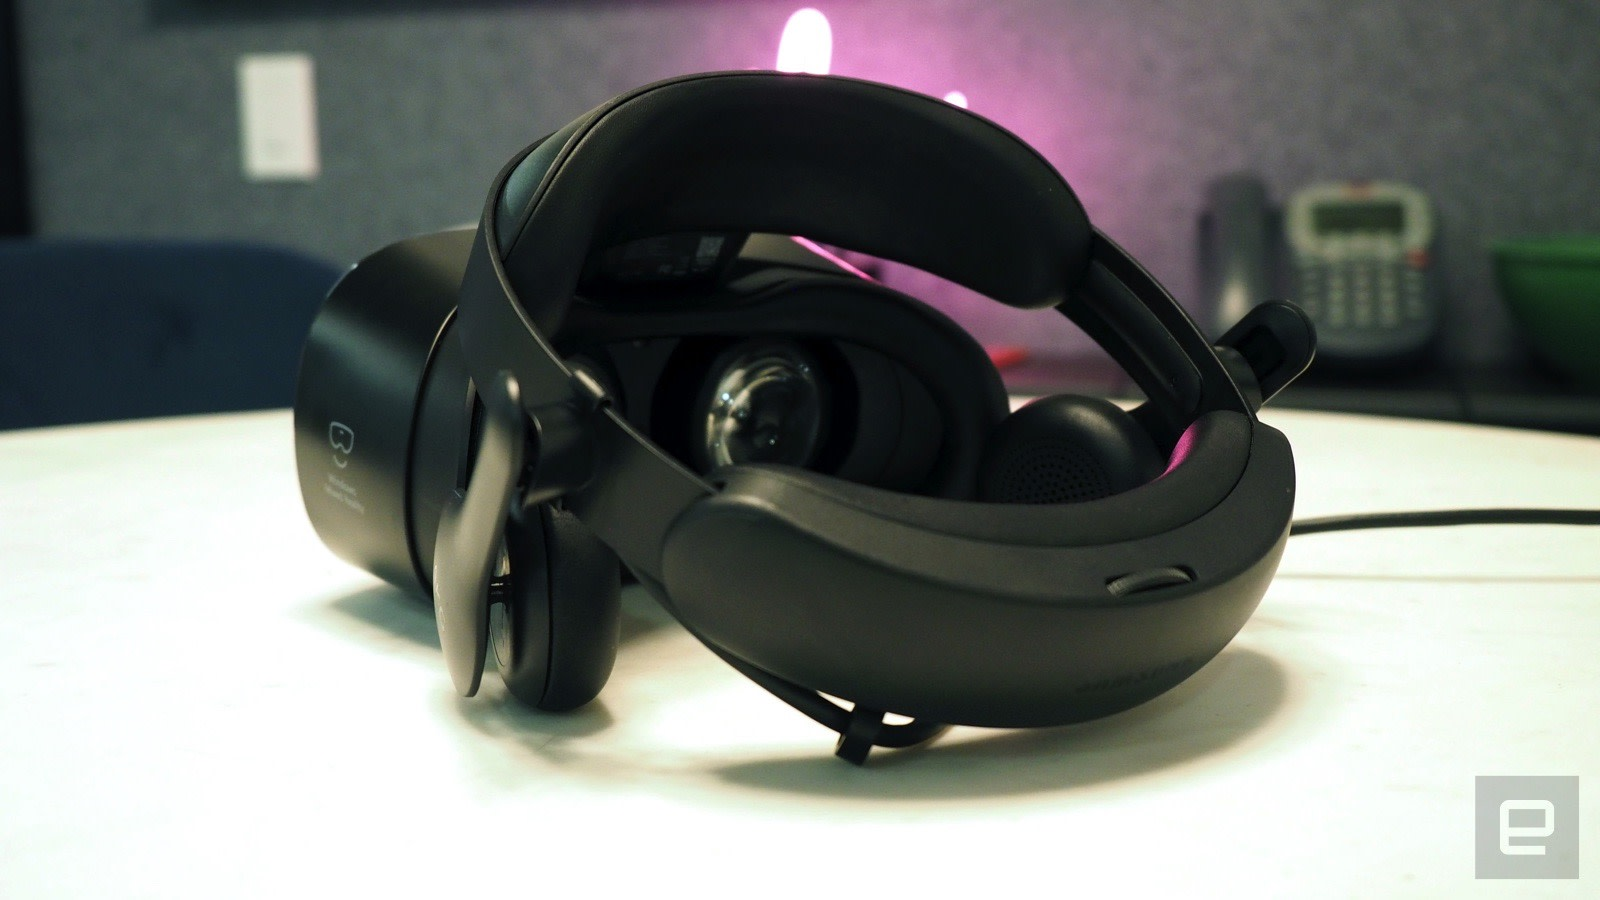 62acb20ce22 Samsung s headset is much heavier than Acer s -- it weighs 625 grams versus  380 -- but the plush cushioning around its eyepiece and headband still  makes it ...